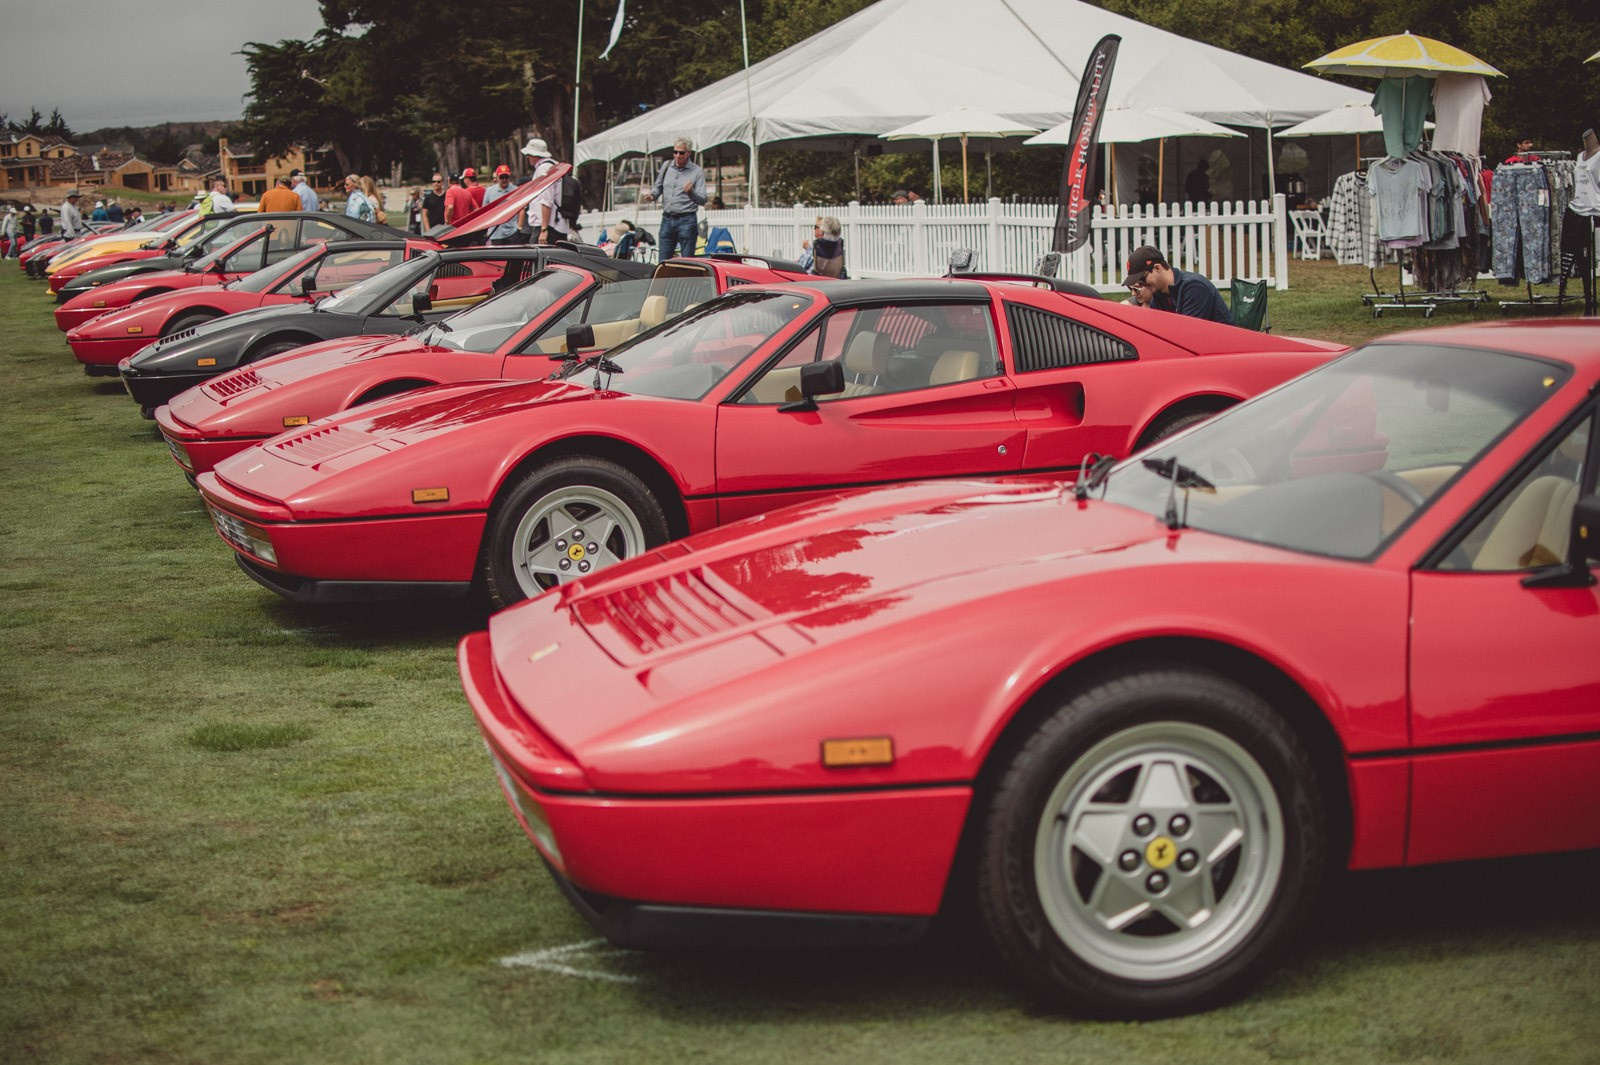 A group of Ferraris in display